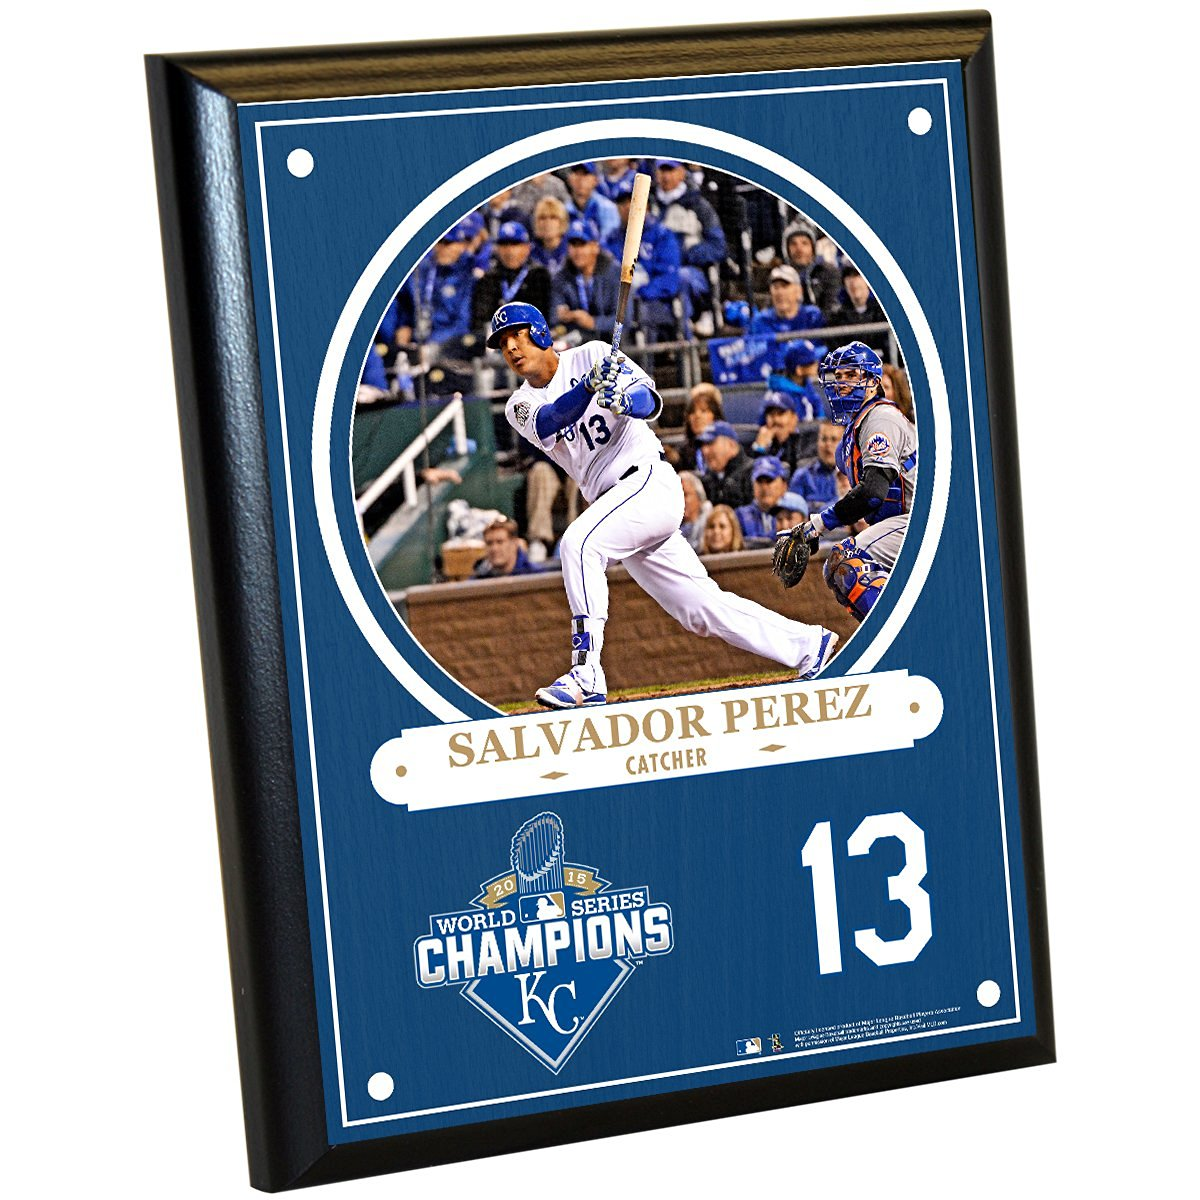 b508f632 Get Quotations · MLB Kansas City Royals Salvador Perez 2015 World Series  Champions Plaque, 8 x 10